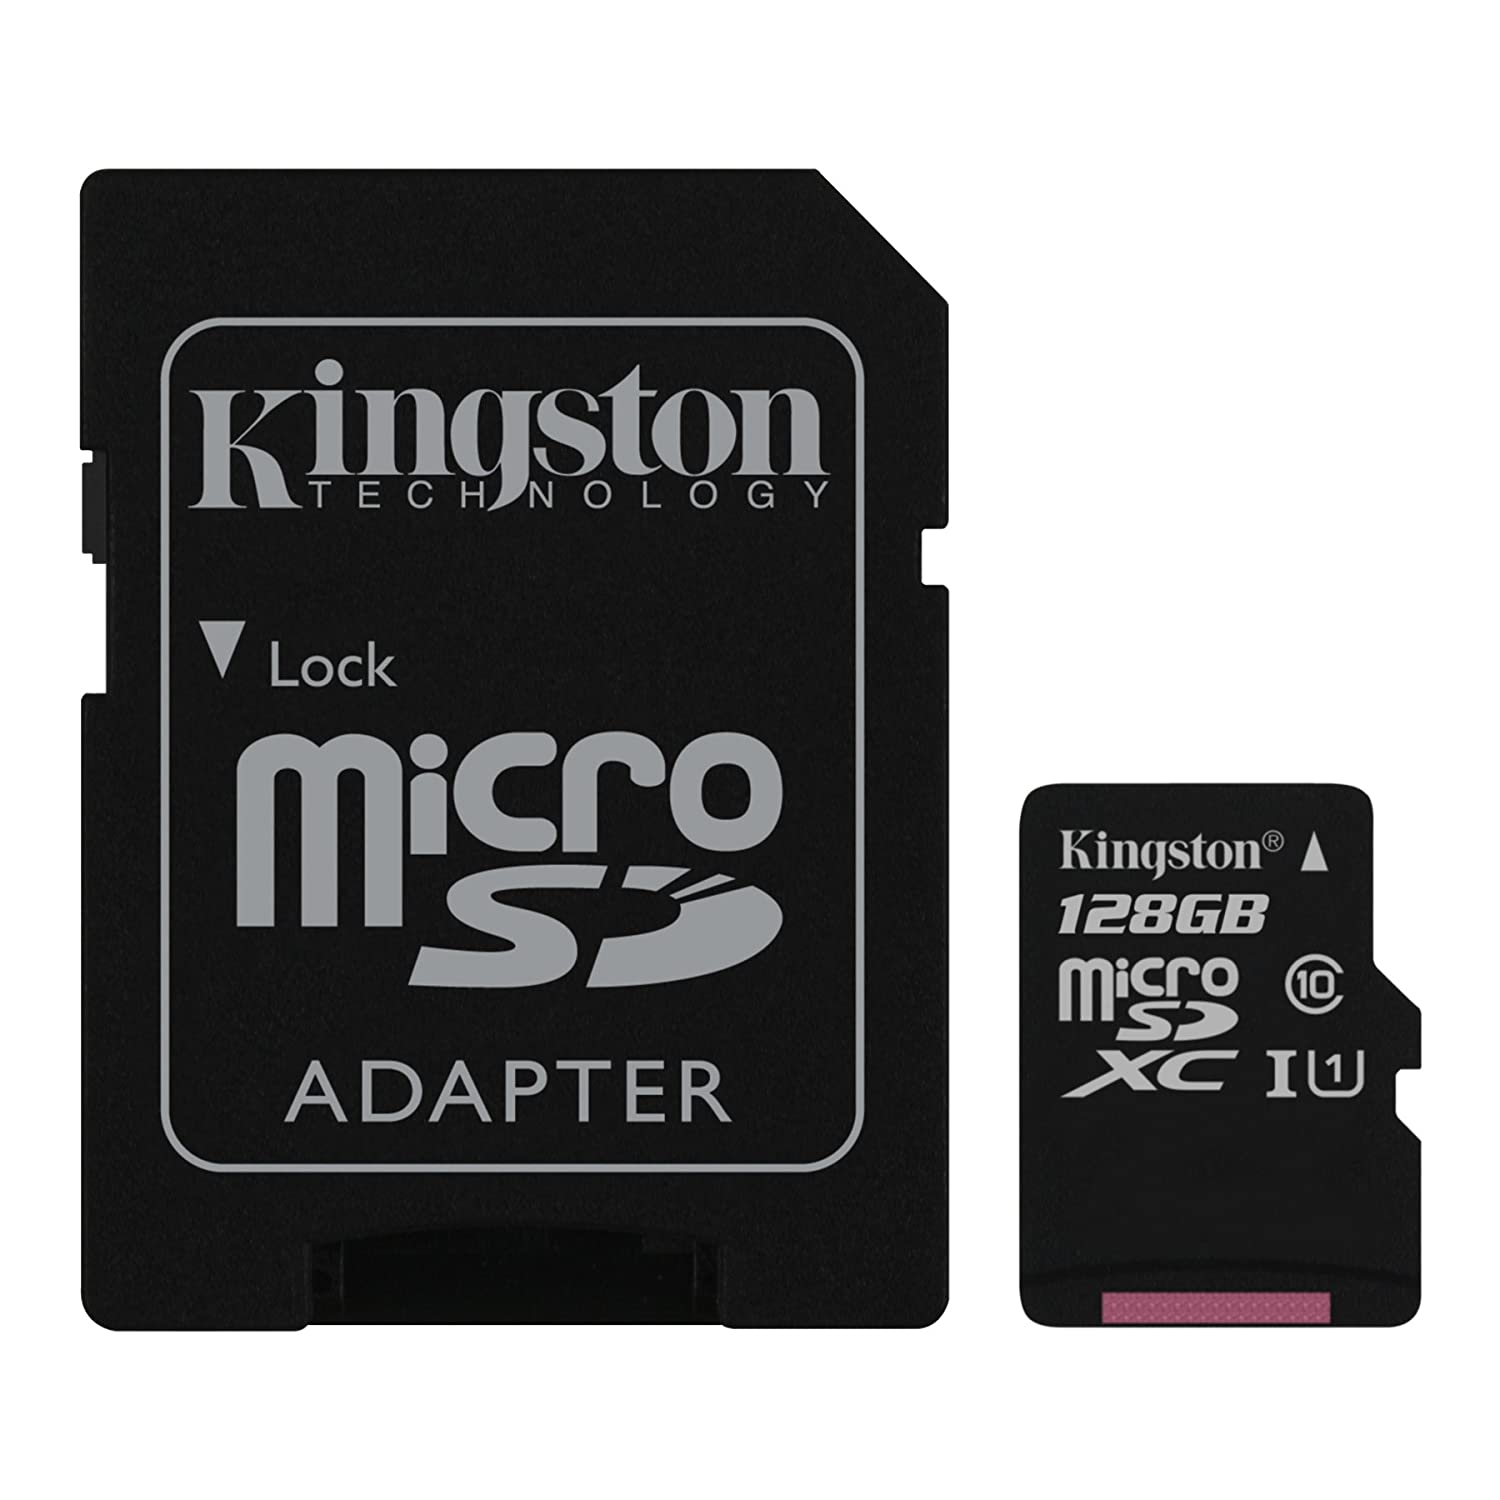 Kingston Digital 128GB microSDXC Class 10 UHS-I 45MB/s Read Card with SD Adapter - SDC10G2/128GB